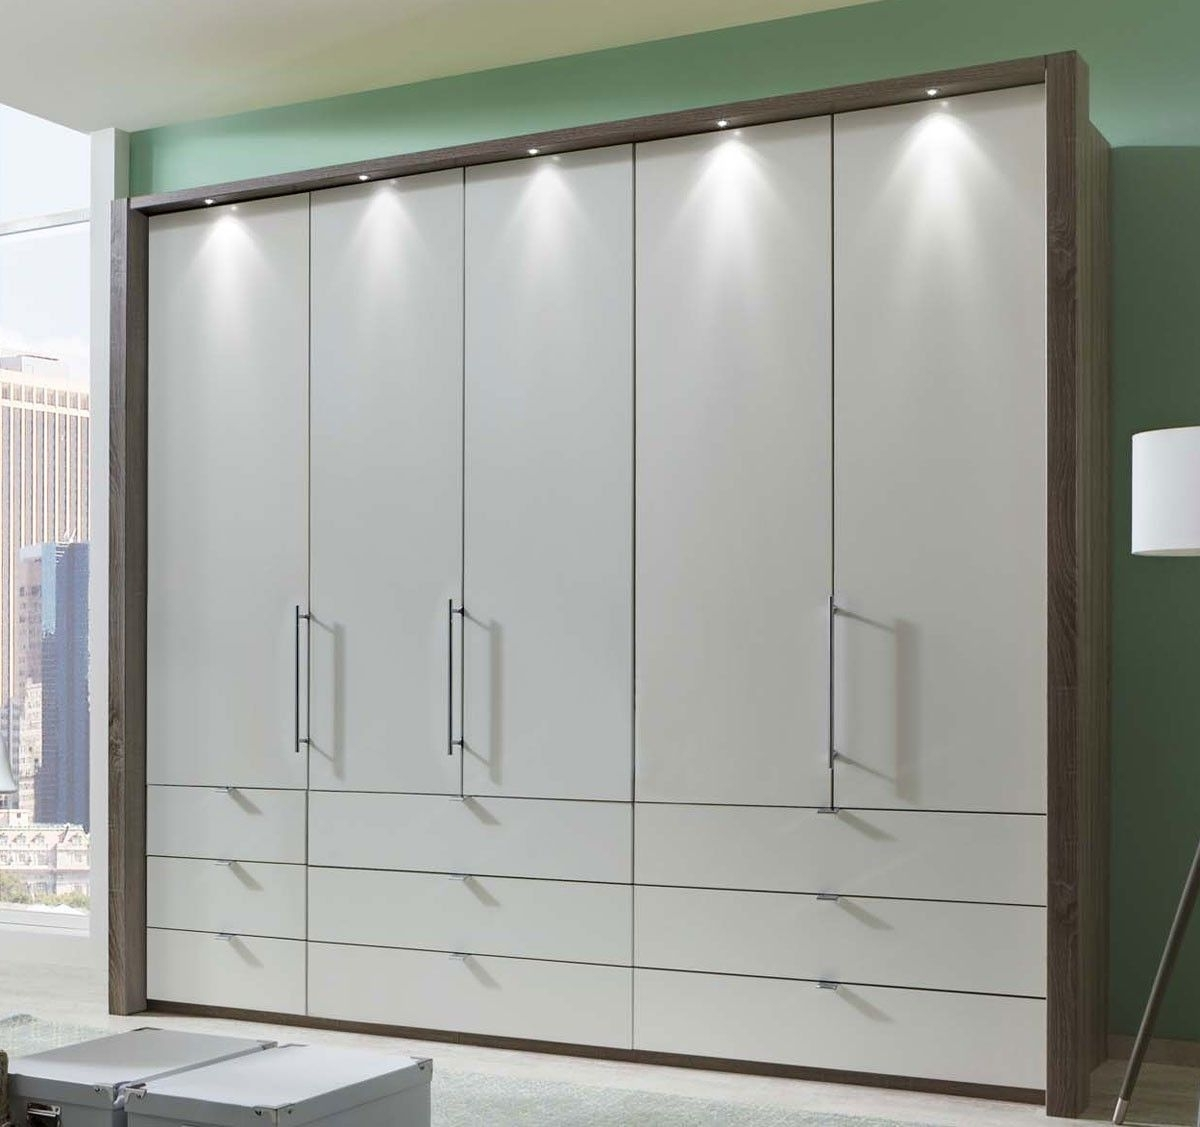 Widely Used Wiemann Loft 5 Door Wardrobe With 9 Drawers With Bi Fold Panorama For 5 Door Wardrobes (View 14 of 15)